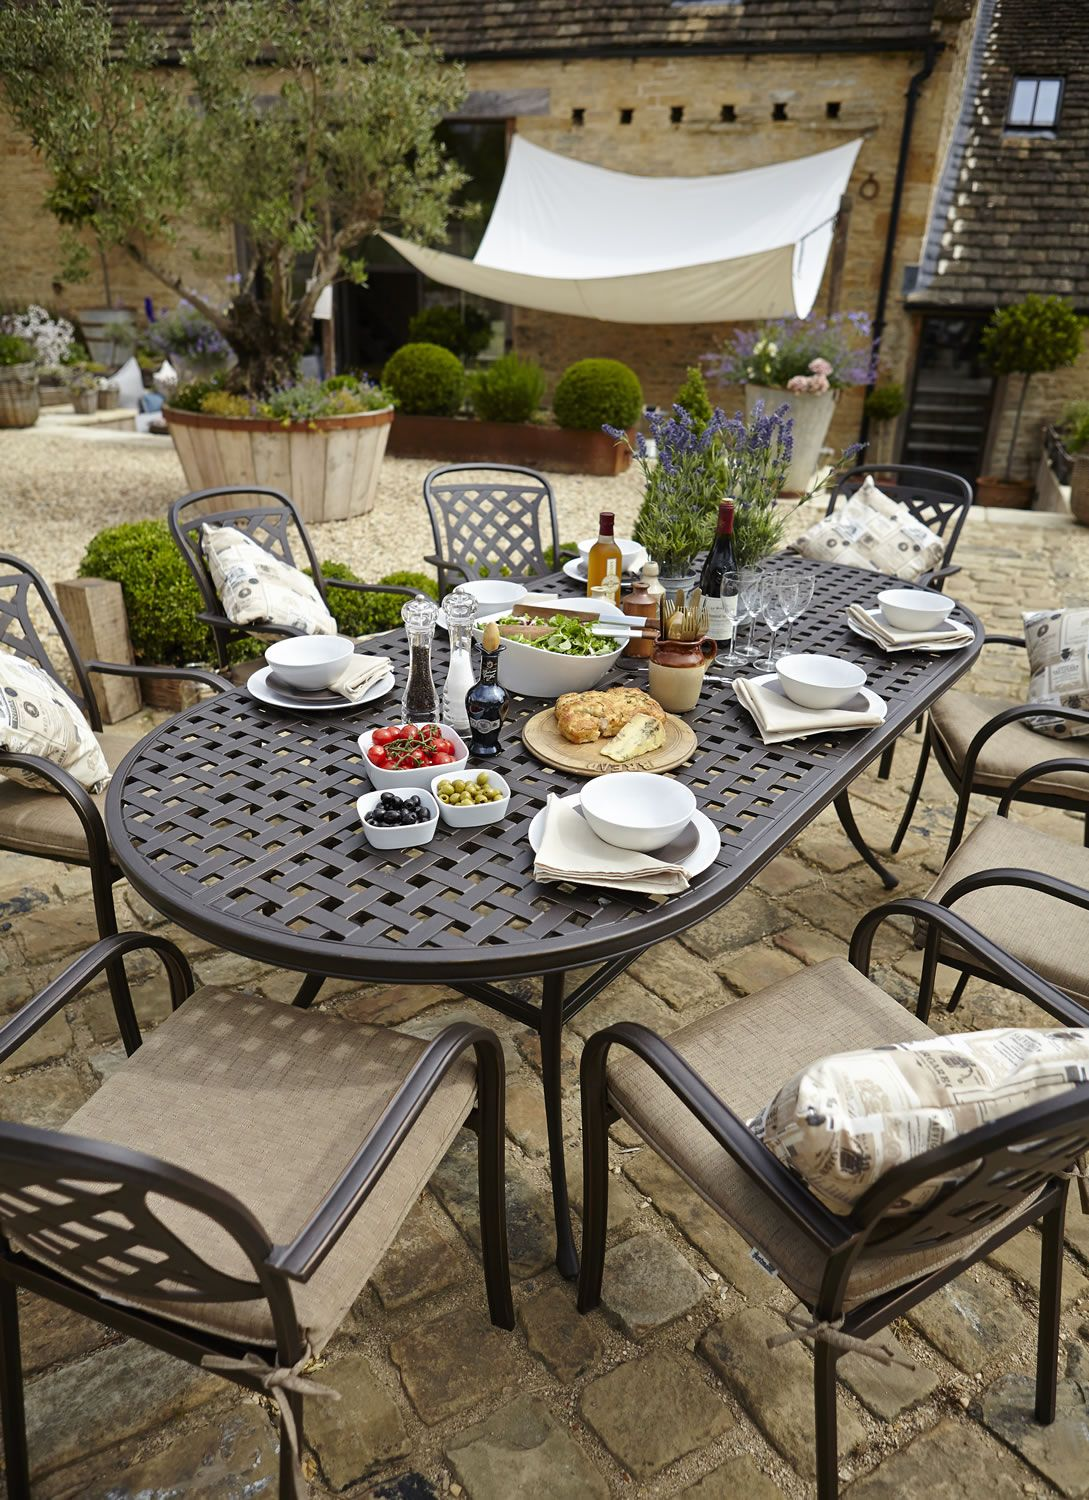 Genial Berkeley Cast Aluminium Oval 8 Seater Garden Dining Set   £980 |  Garden4Less UK Shop